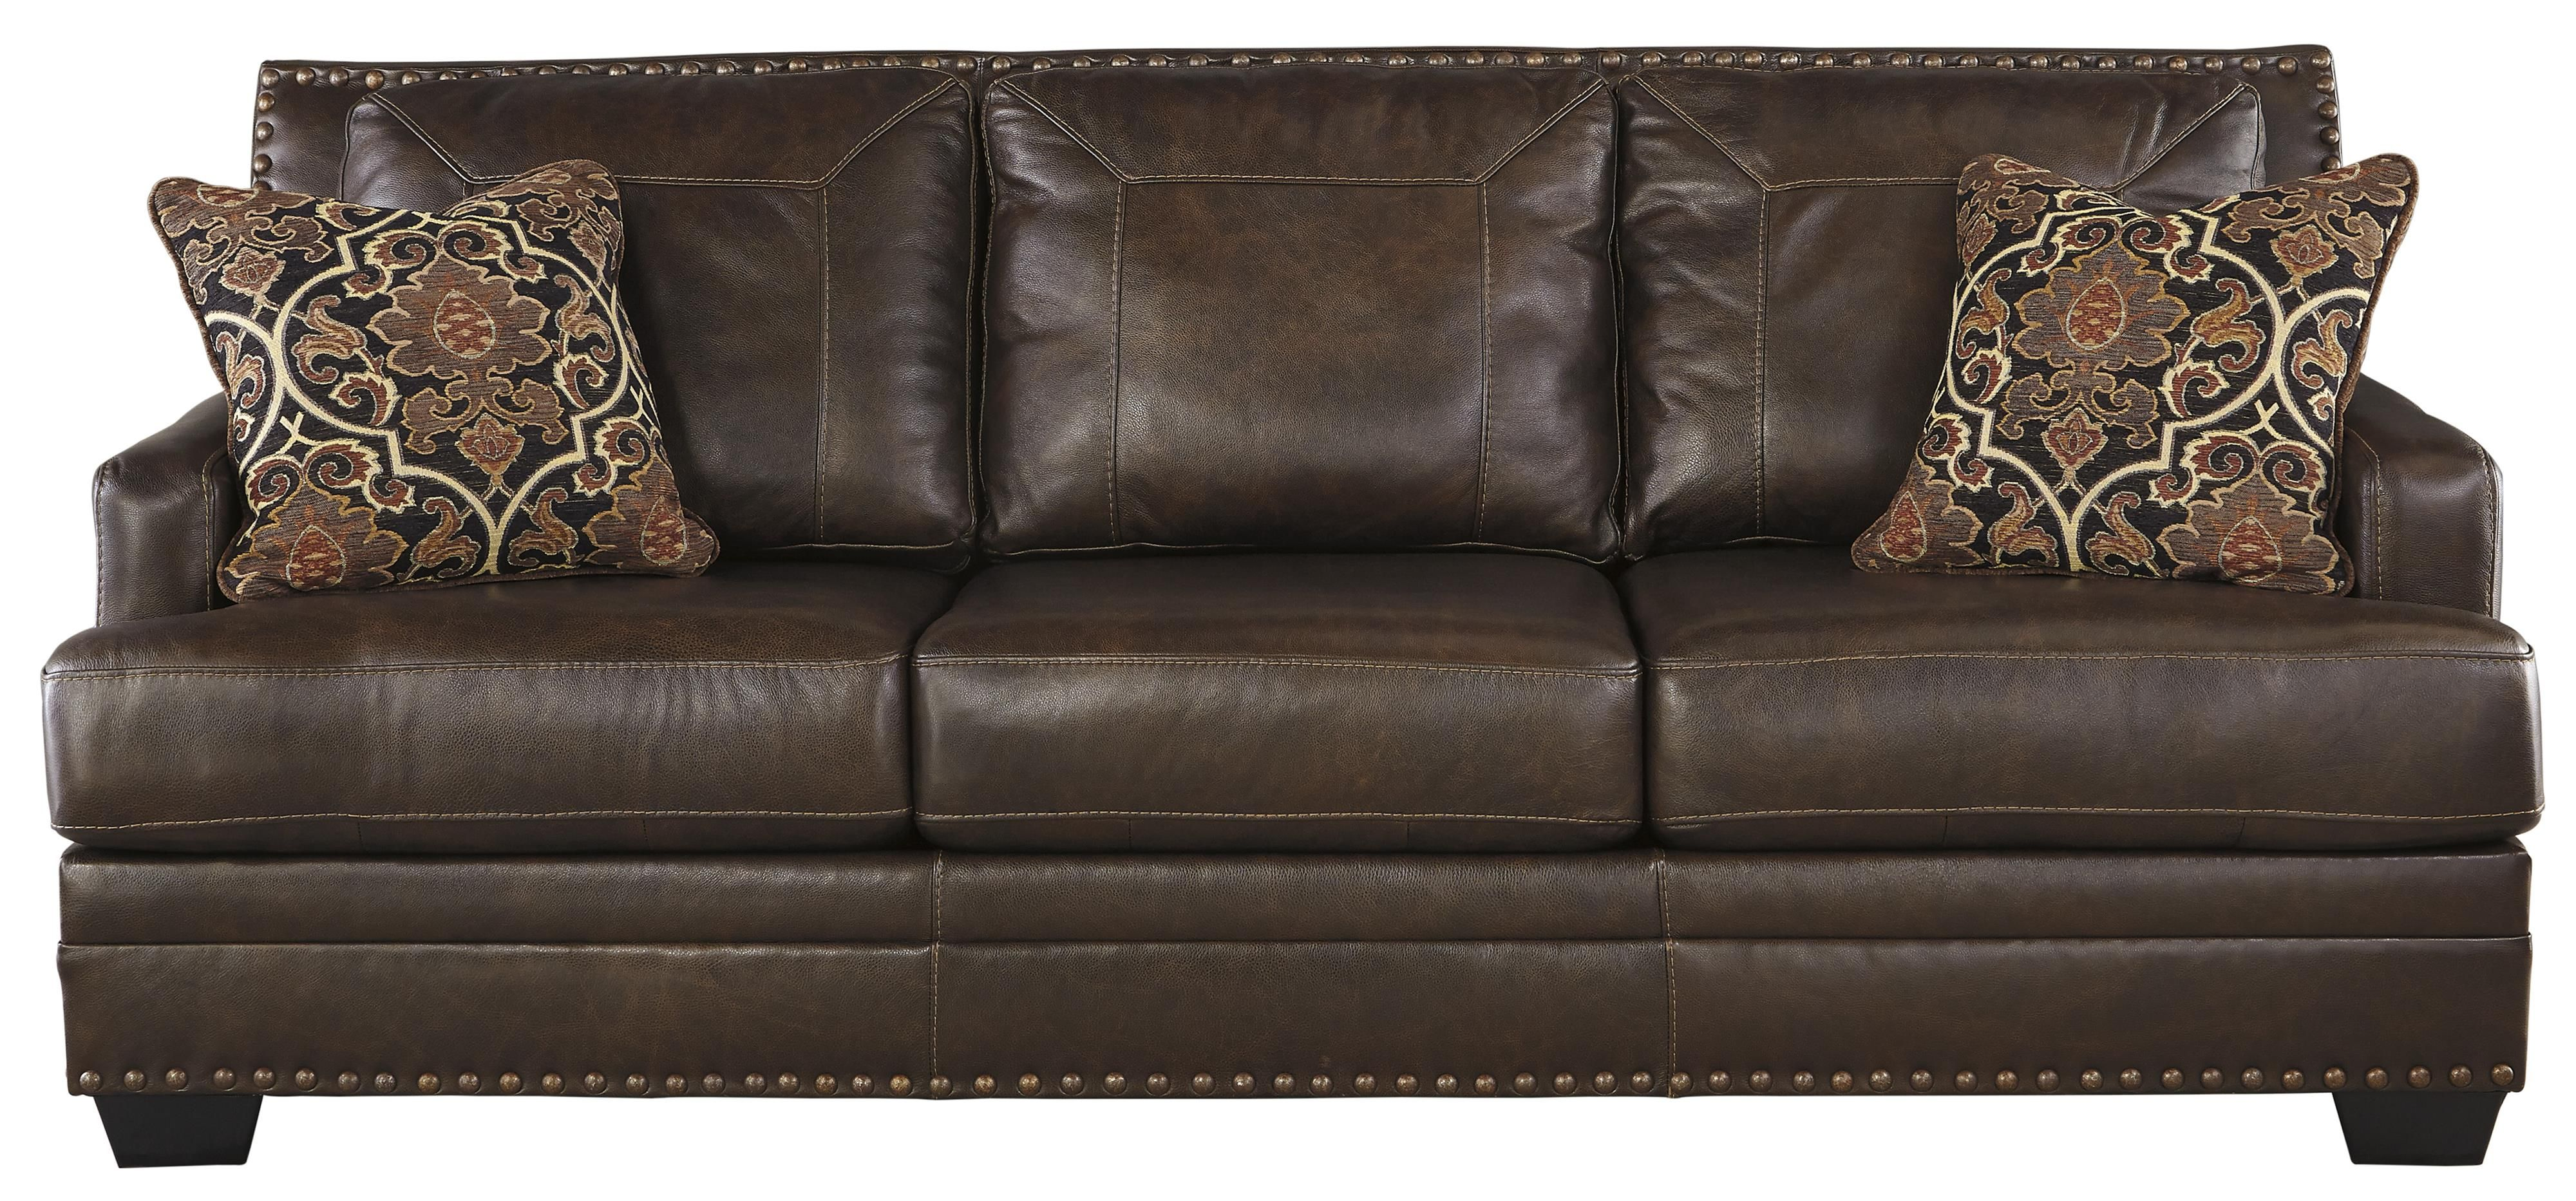 Corvan Sofa by Signature Design by Ashley at www